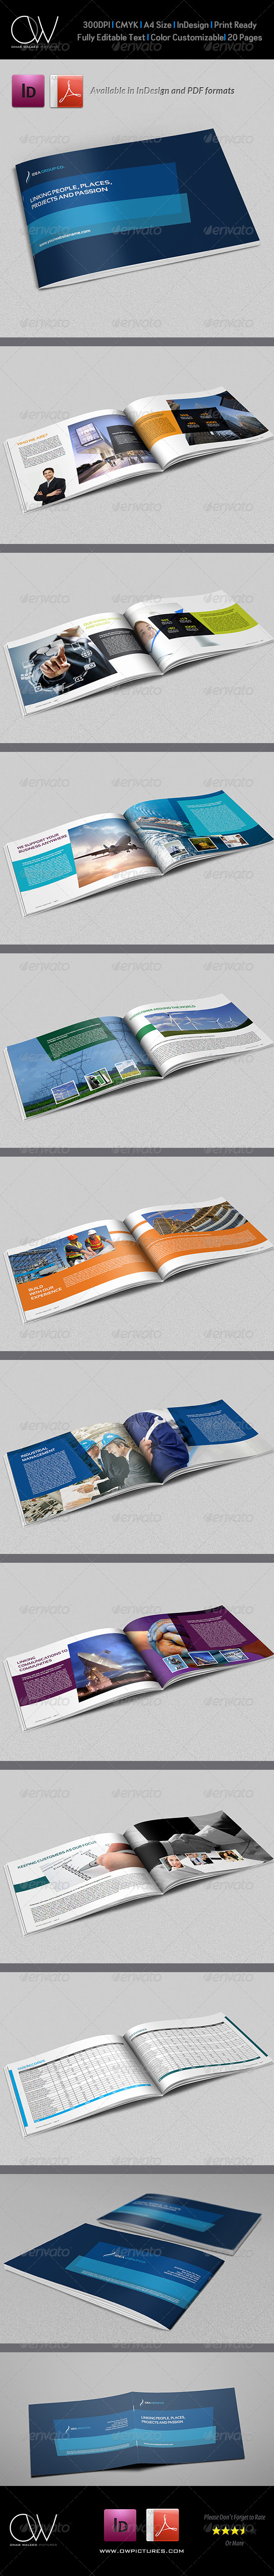 GraphicRiver Corporate Brochure Template Vol.12 20 Pages 5900615